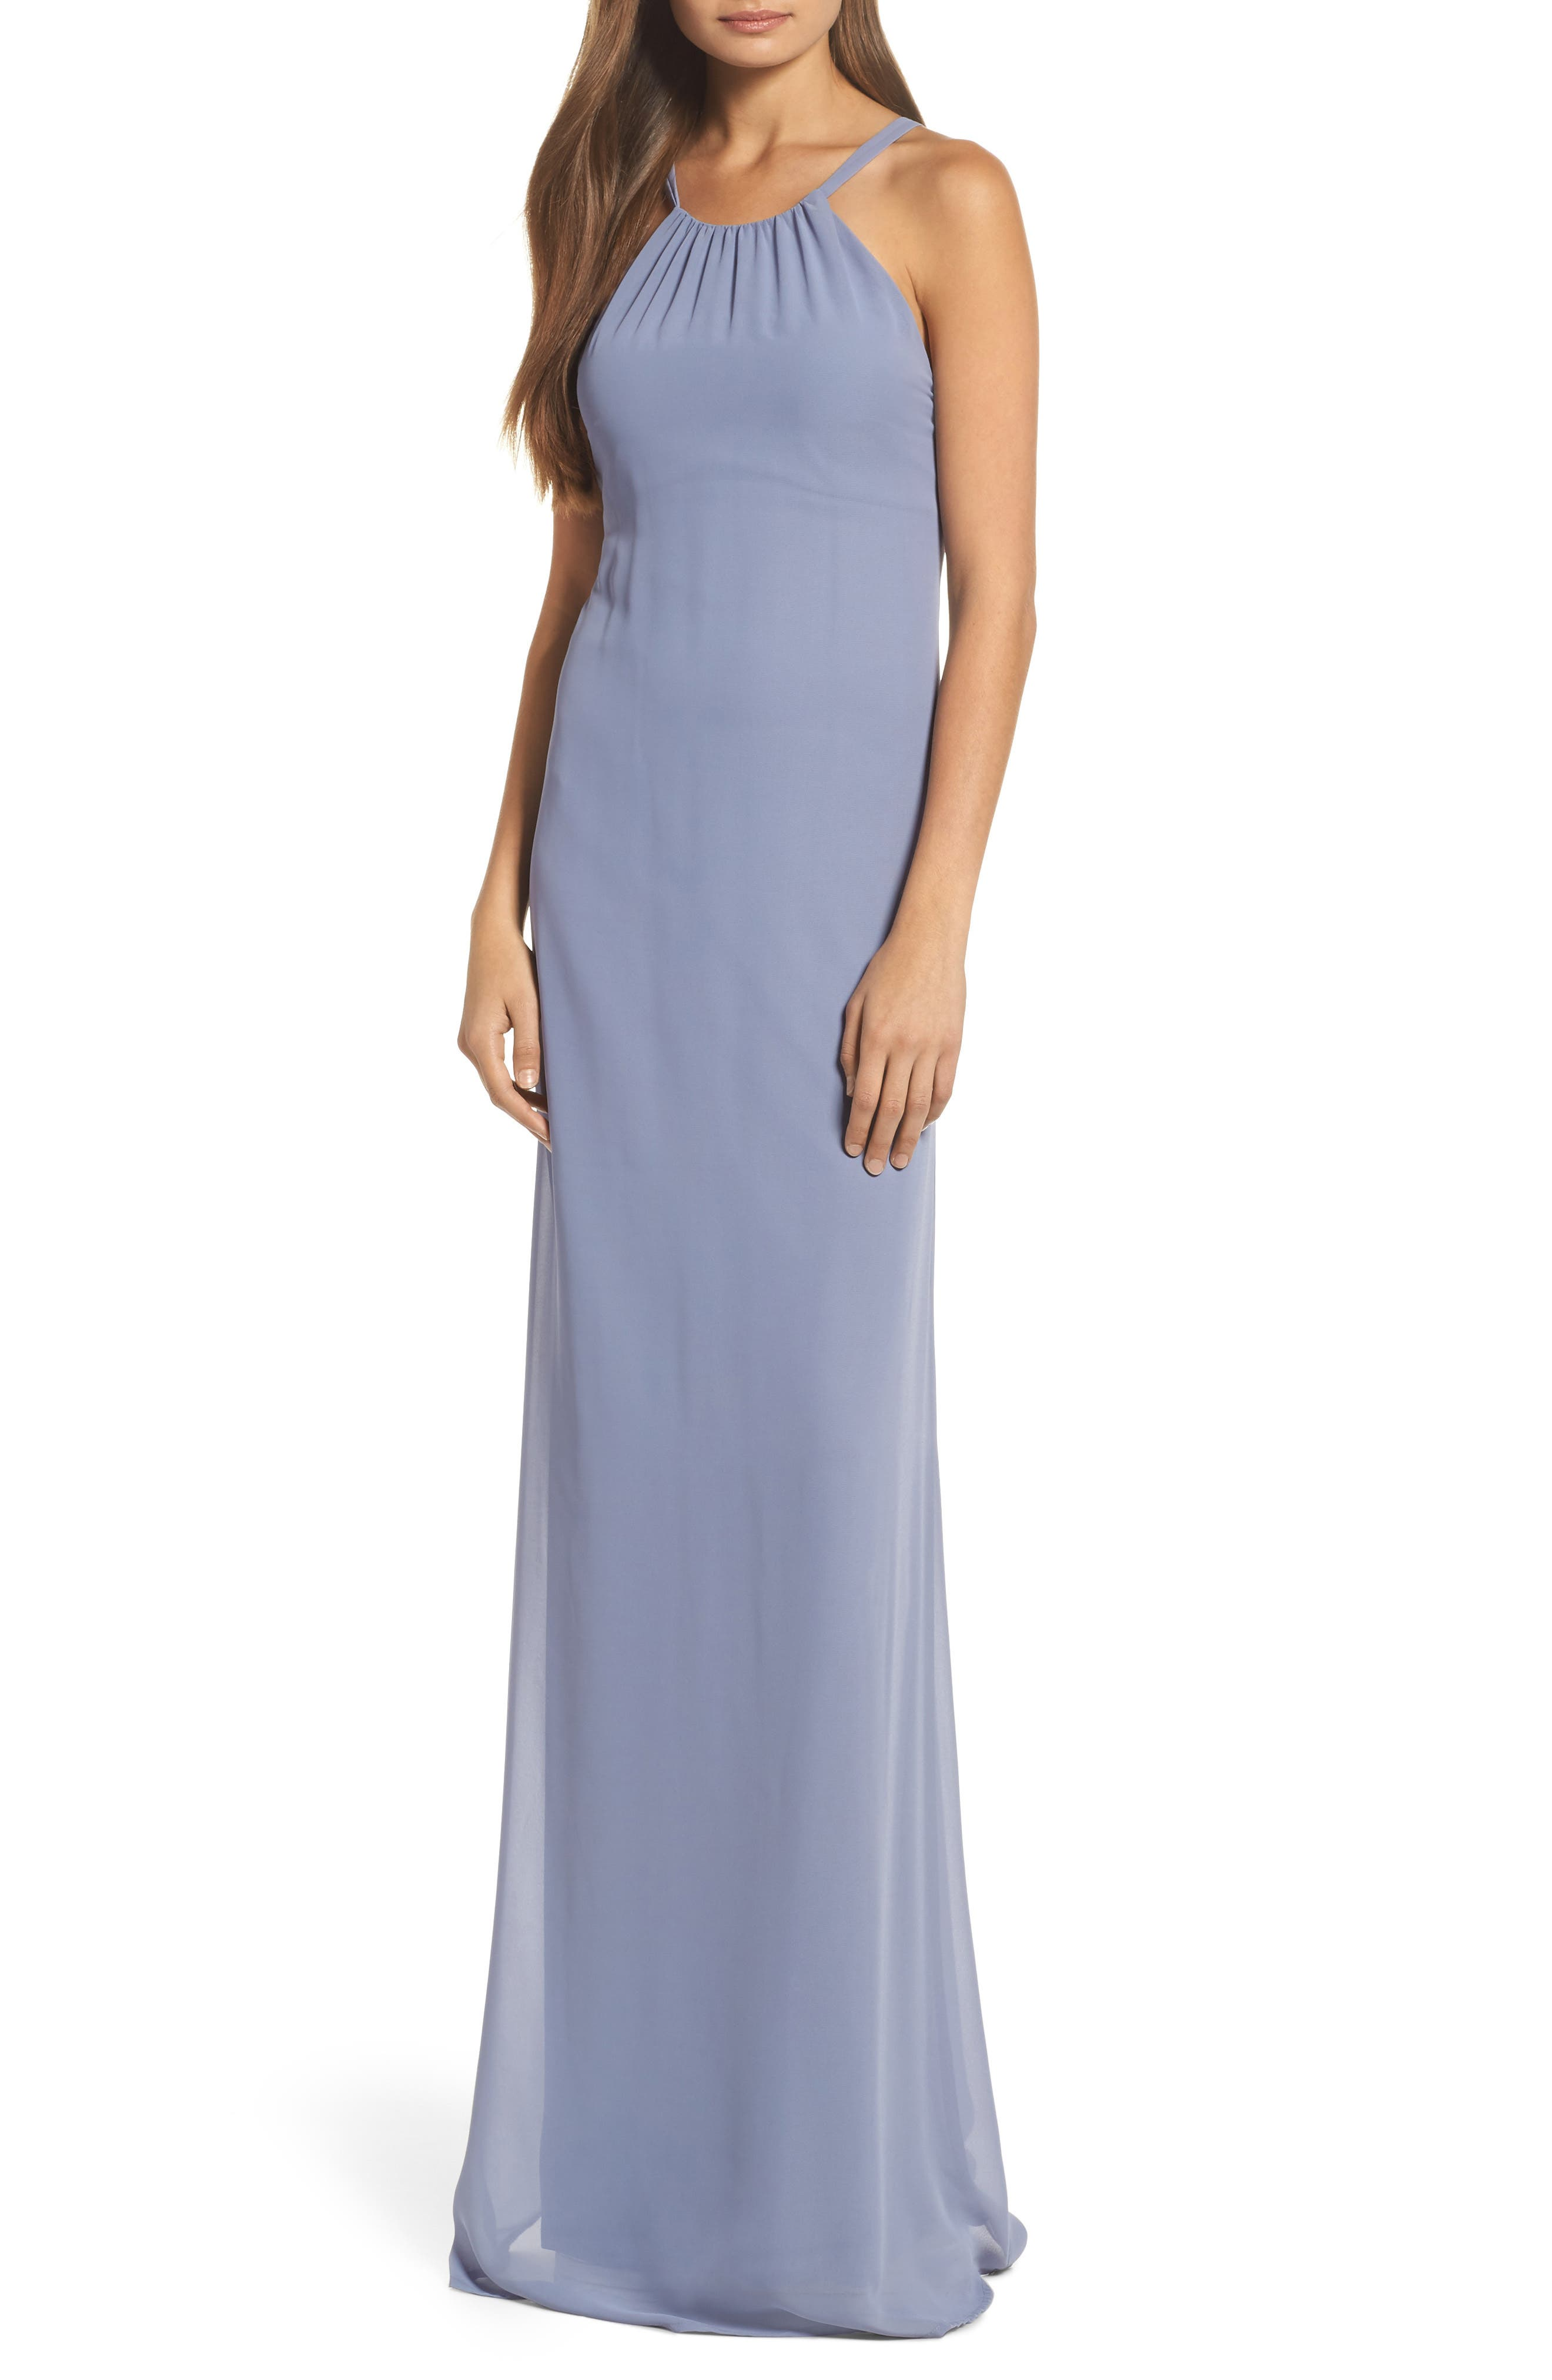 Strappy High Neck Chiffon Gown,                             Main thumbnail 1, color,                             020